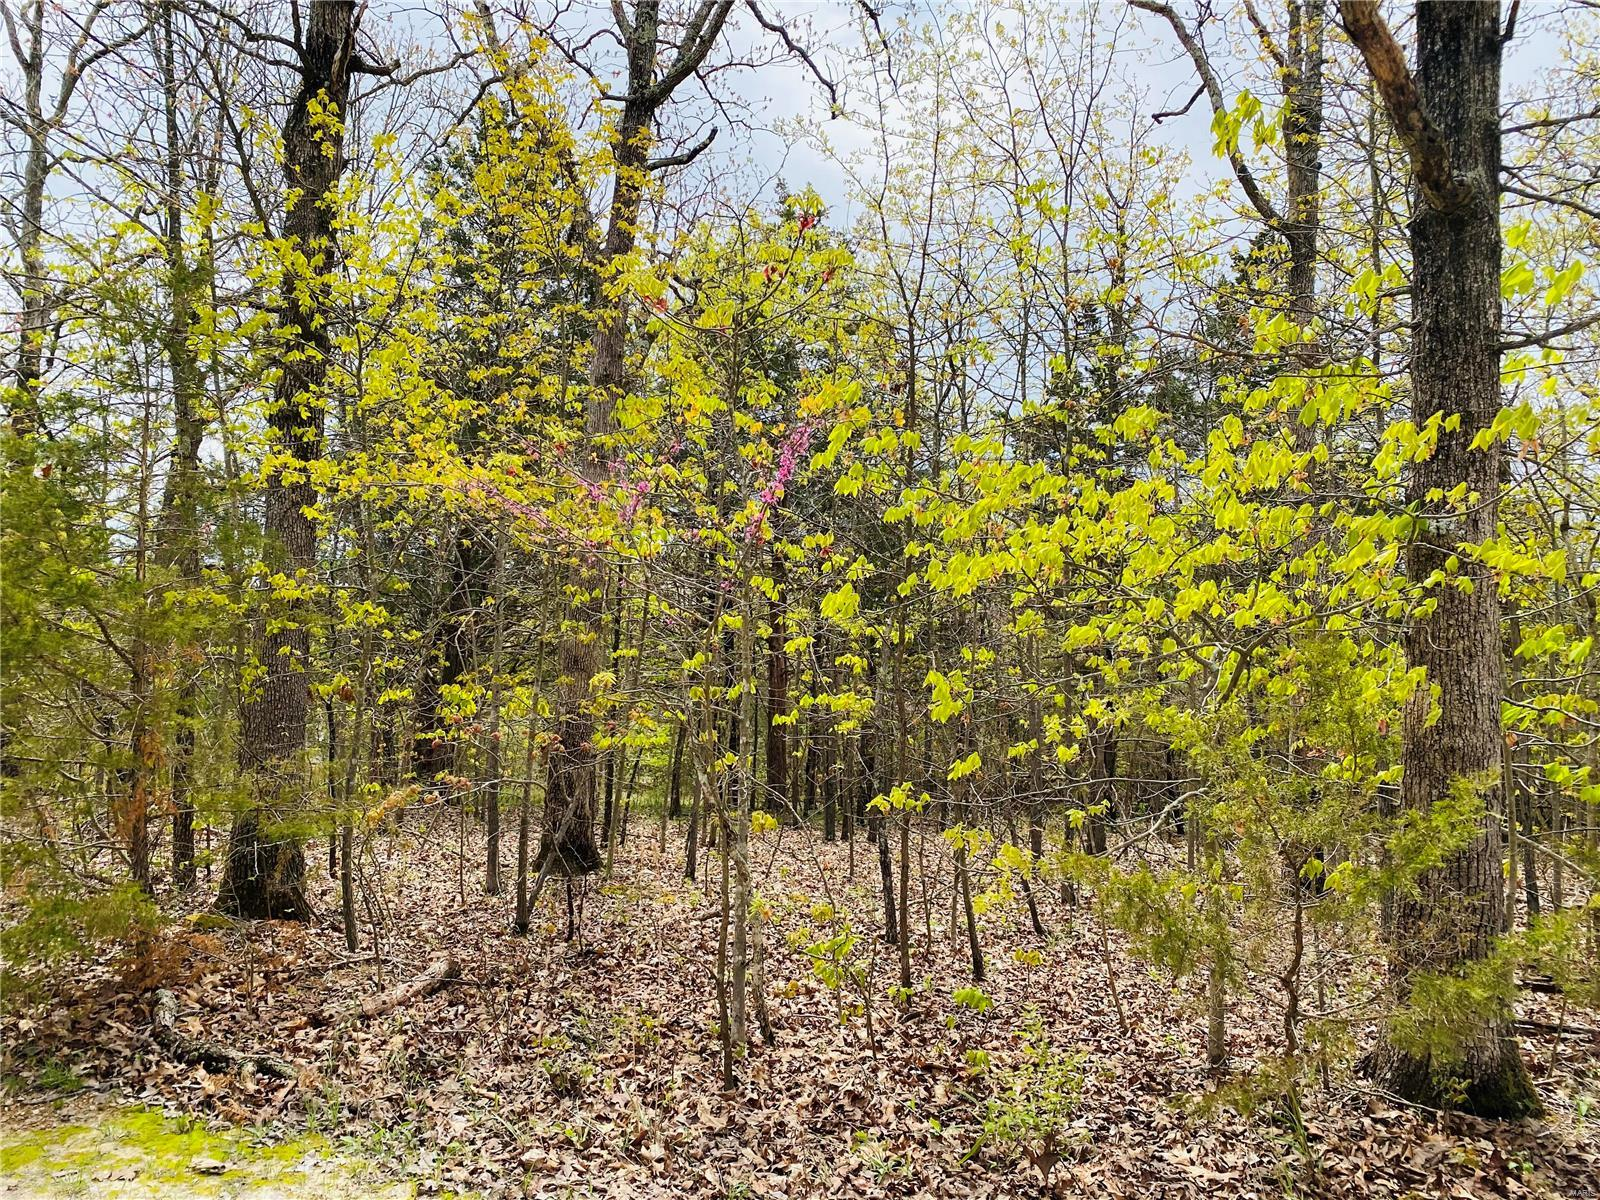 516 PICADILLY Court Property Photo - De Soto, MO real estate listing